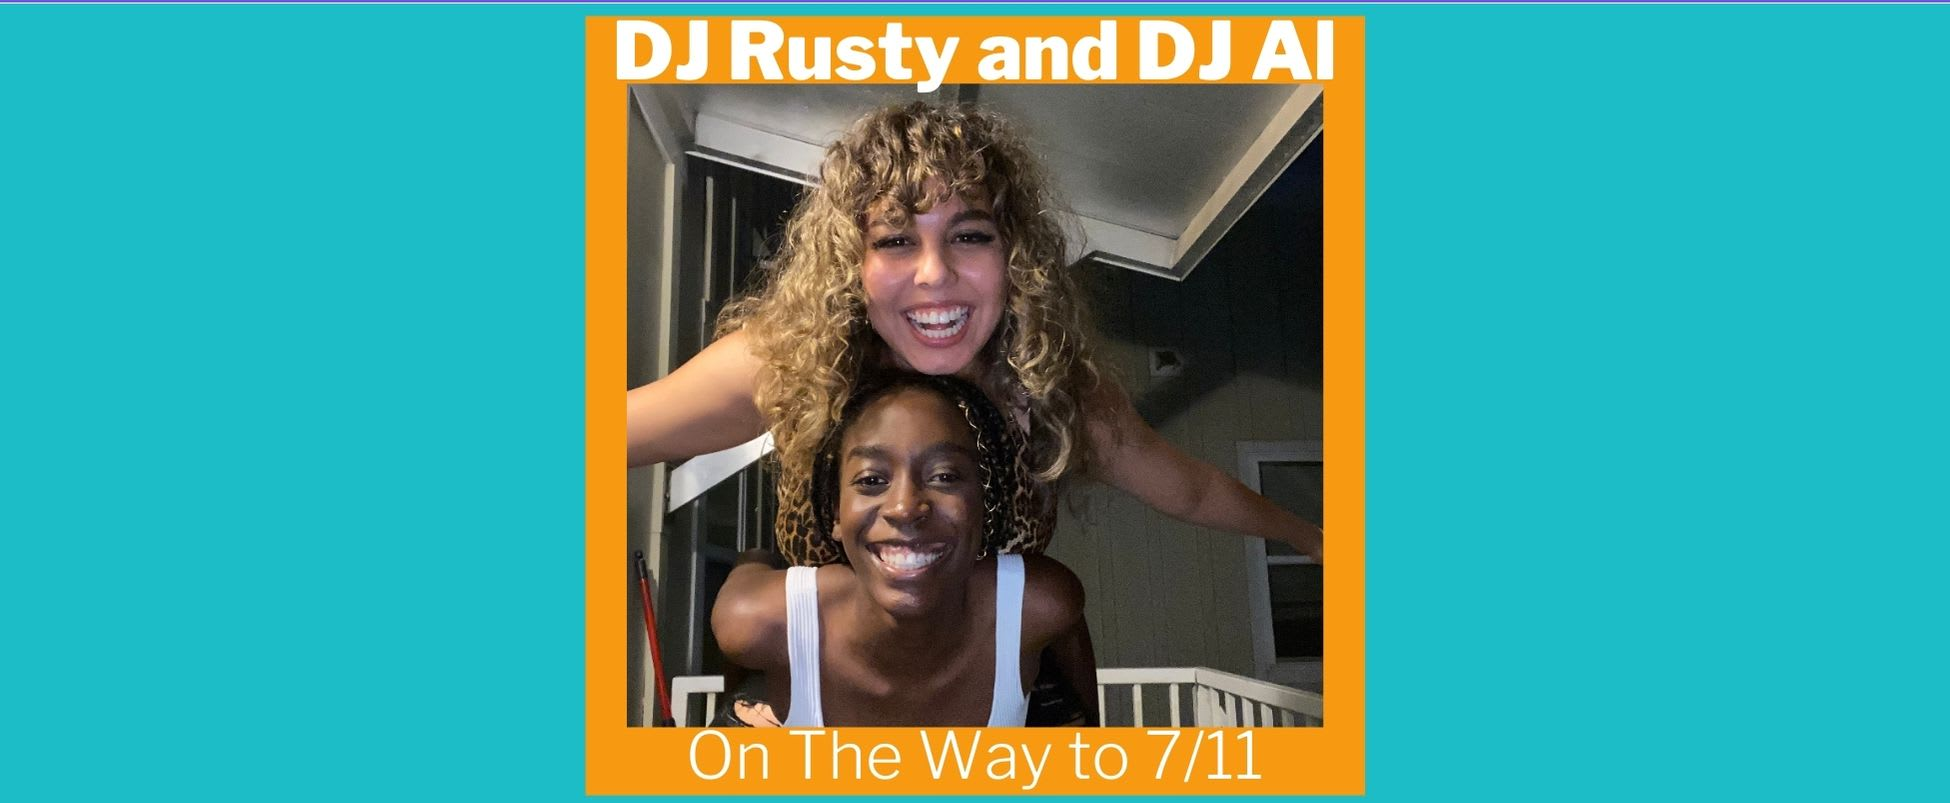 Show Spotlight: On The Way To 7/11 with DJ Rusty and DJ AI